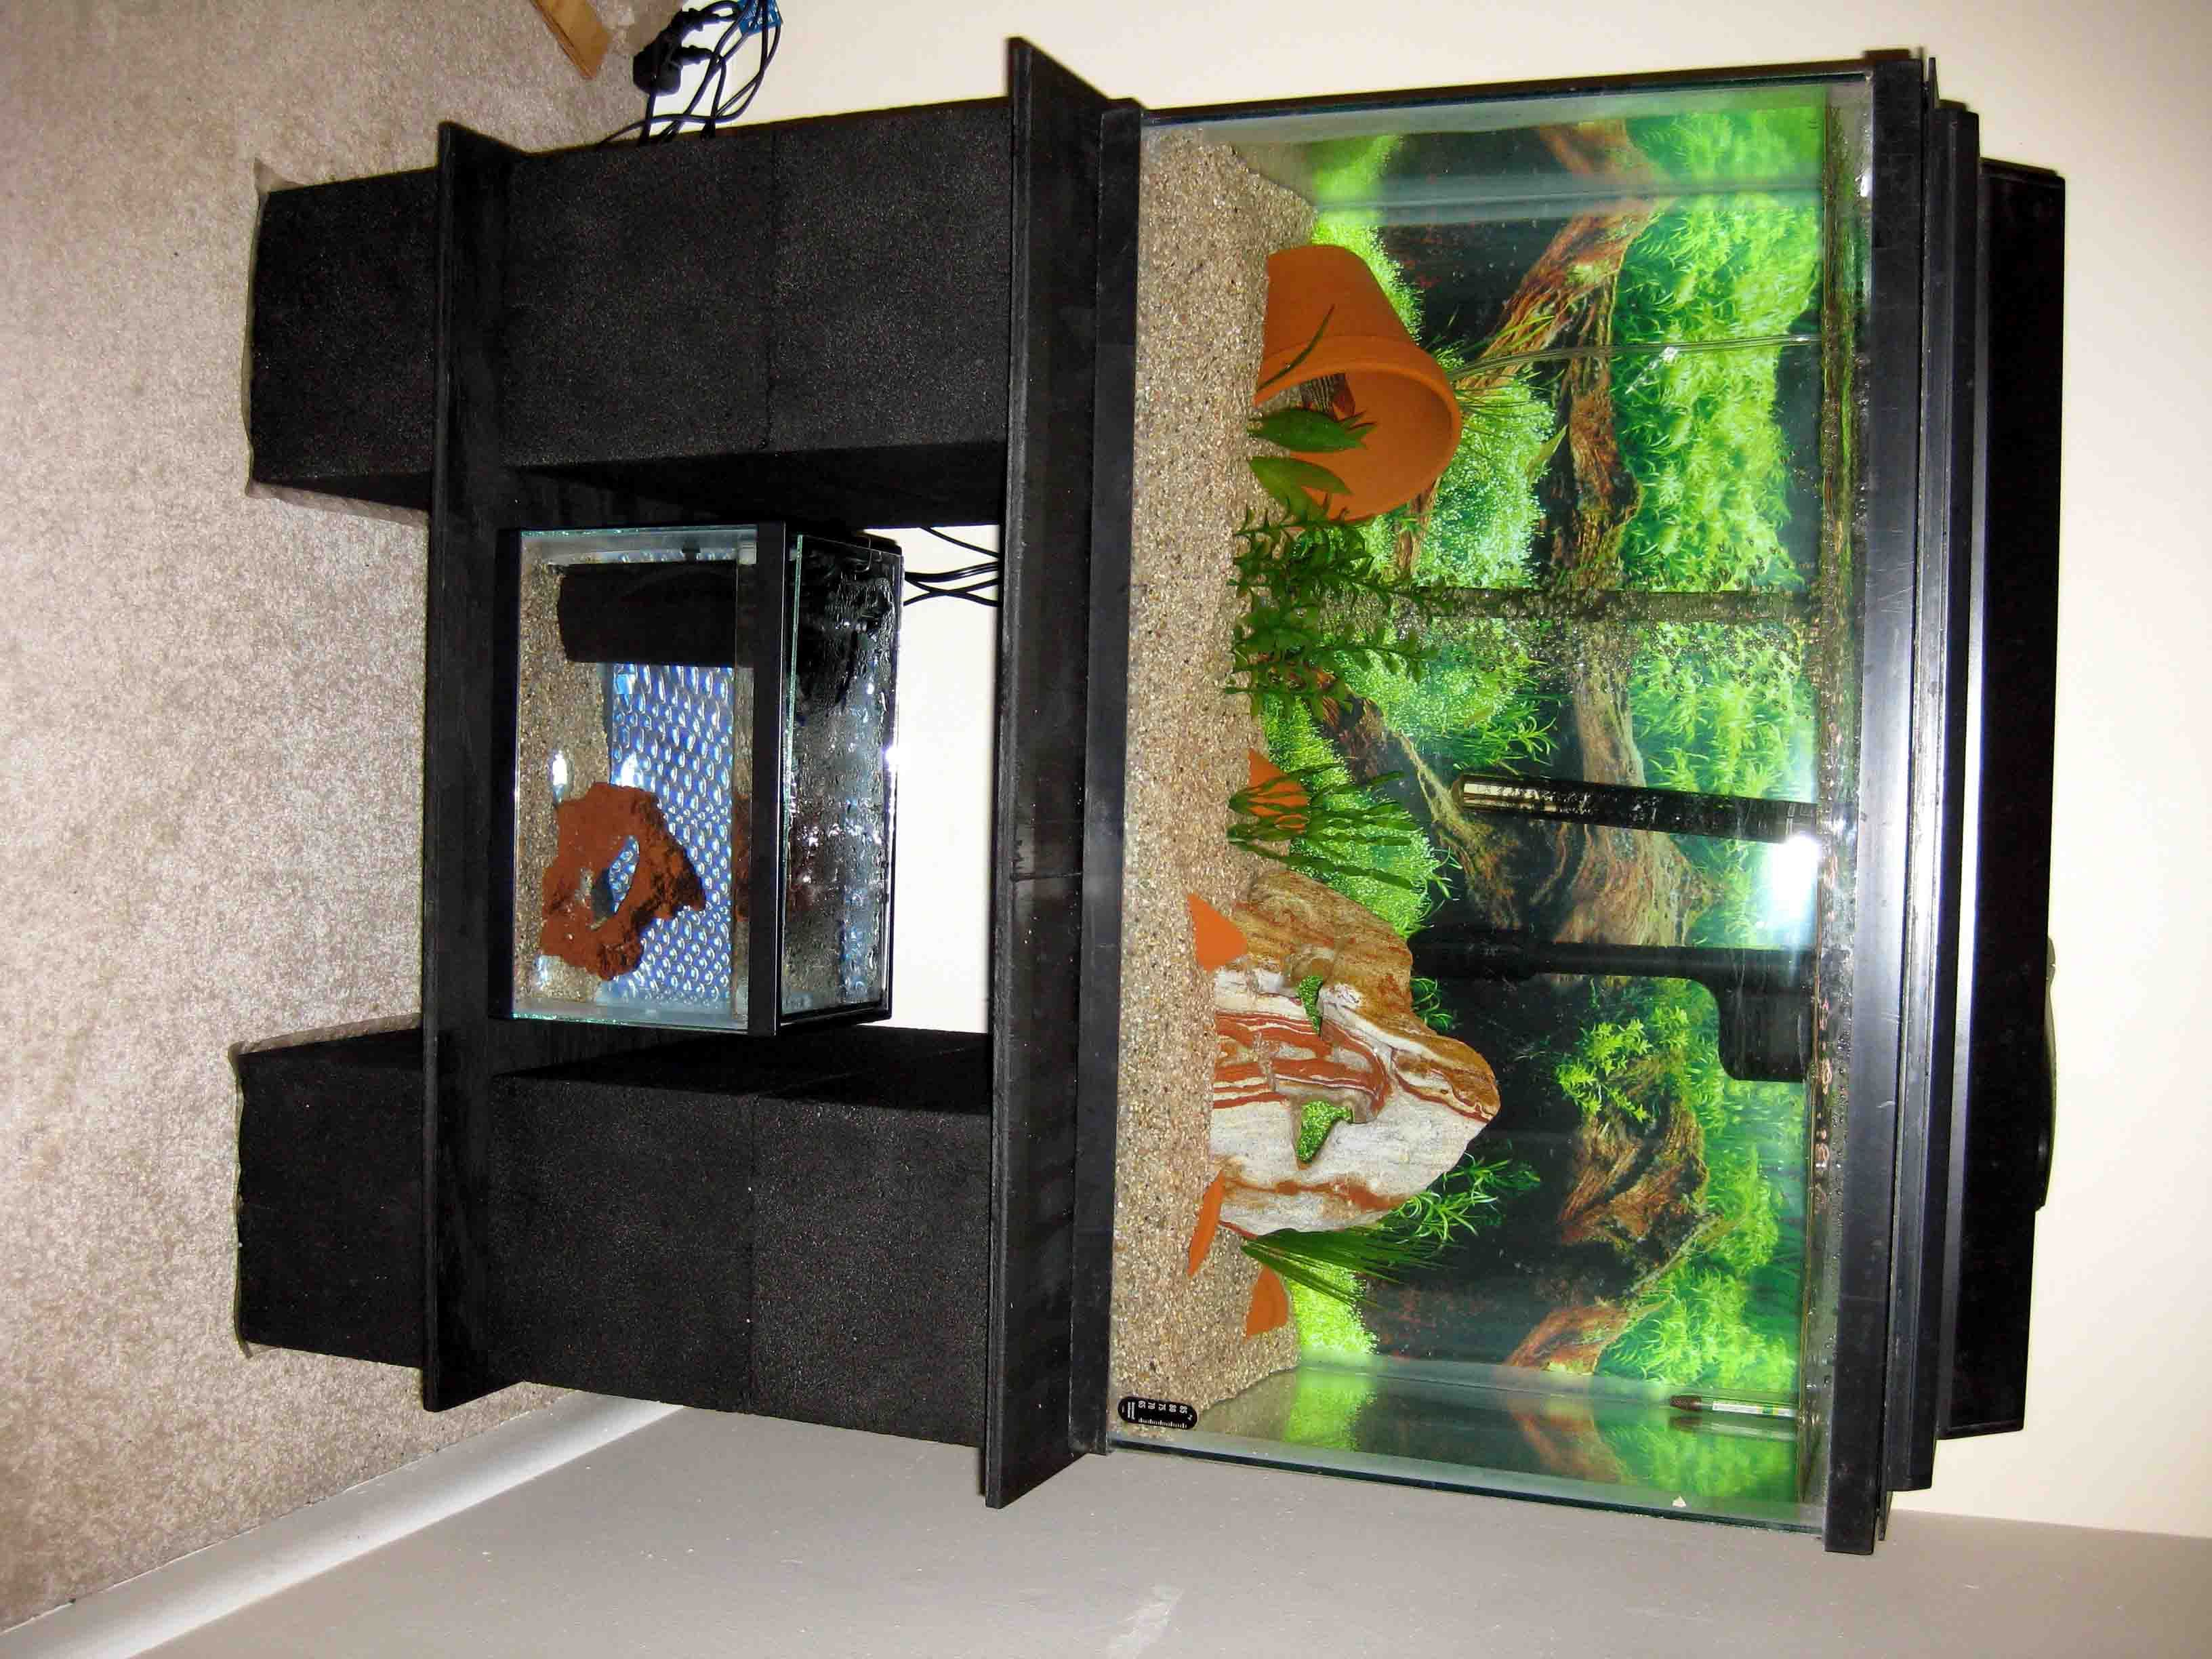 Build A Strong Inexpensive Aquarium Stand Aquarium Stand Diy Aquarium Stand Aquarium